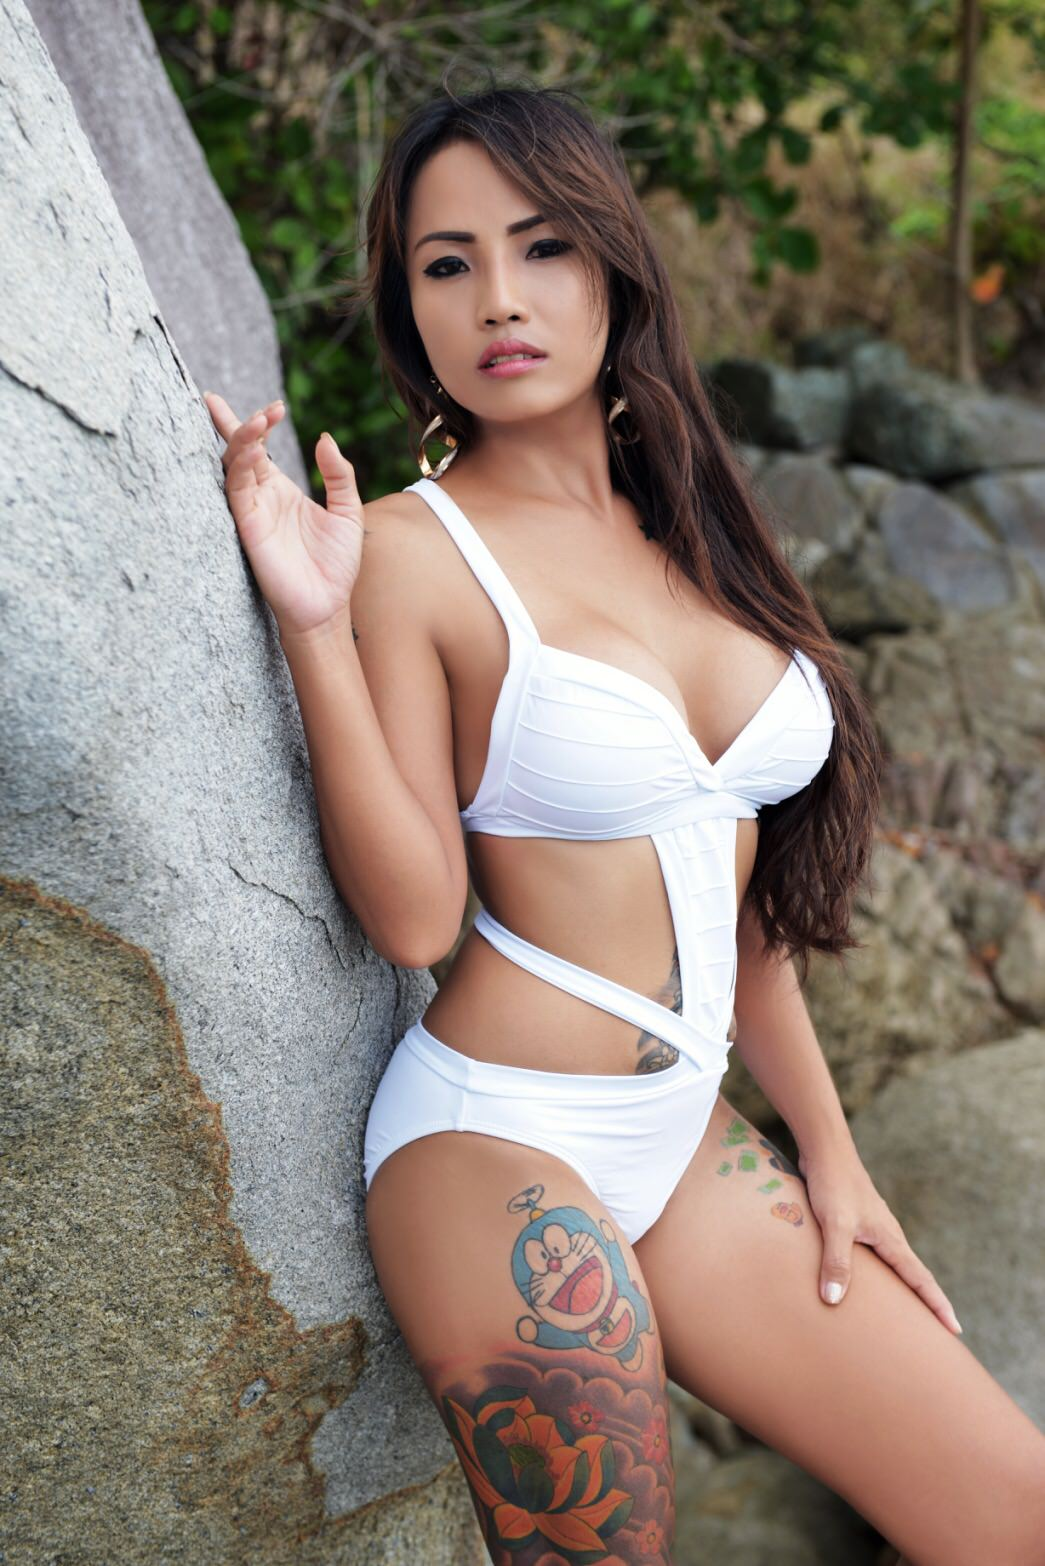 cams escort agency phuket